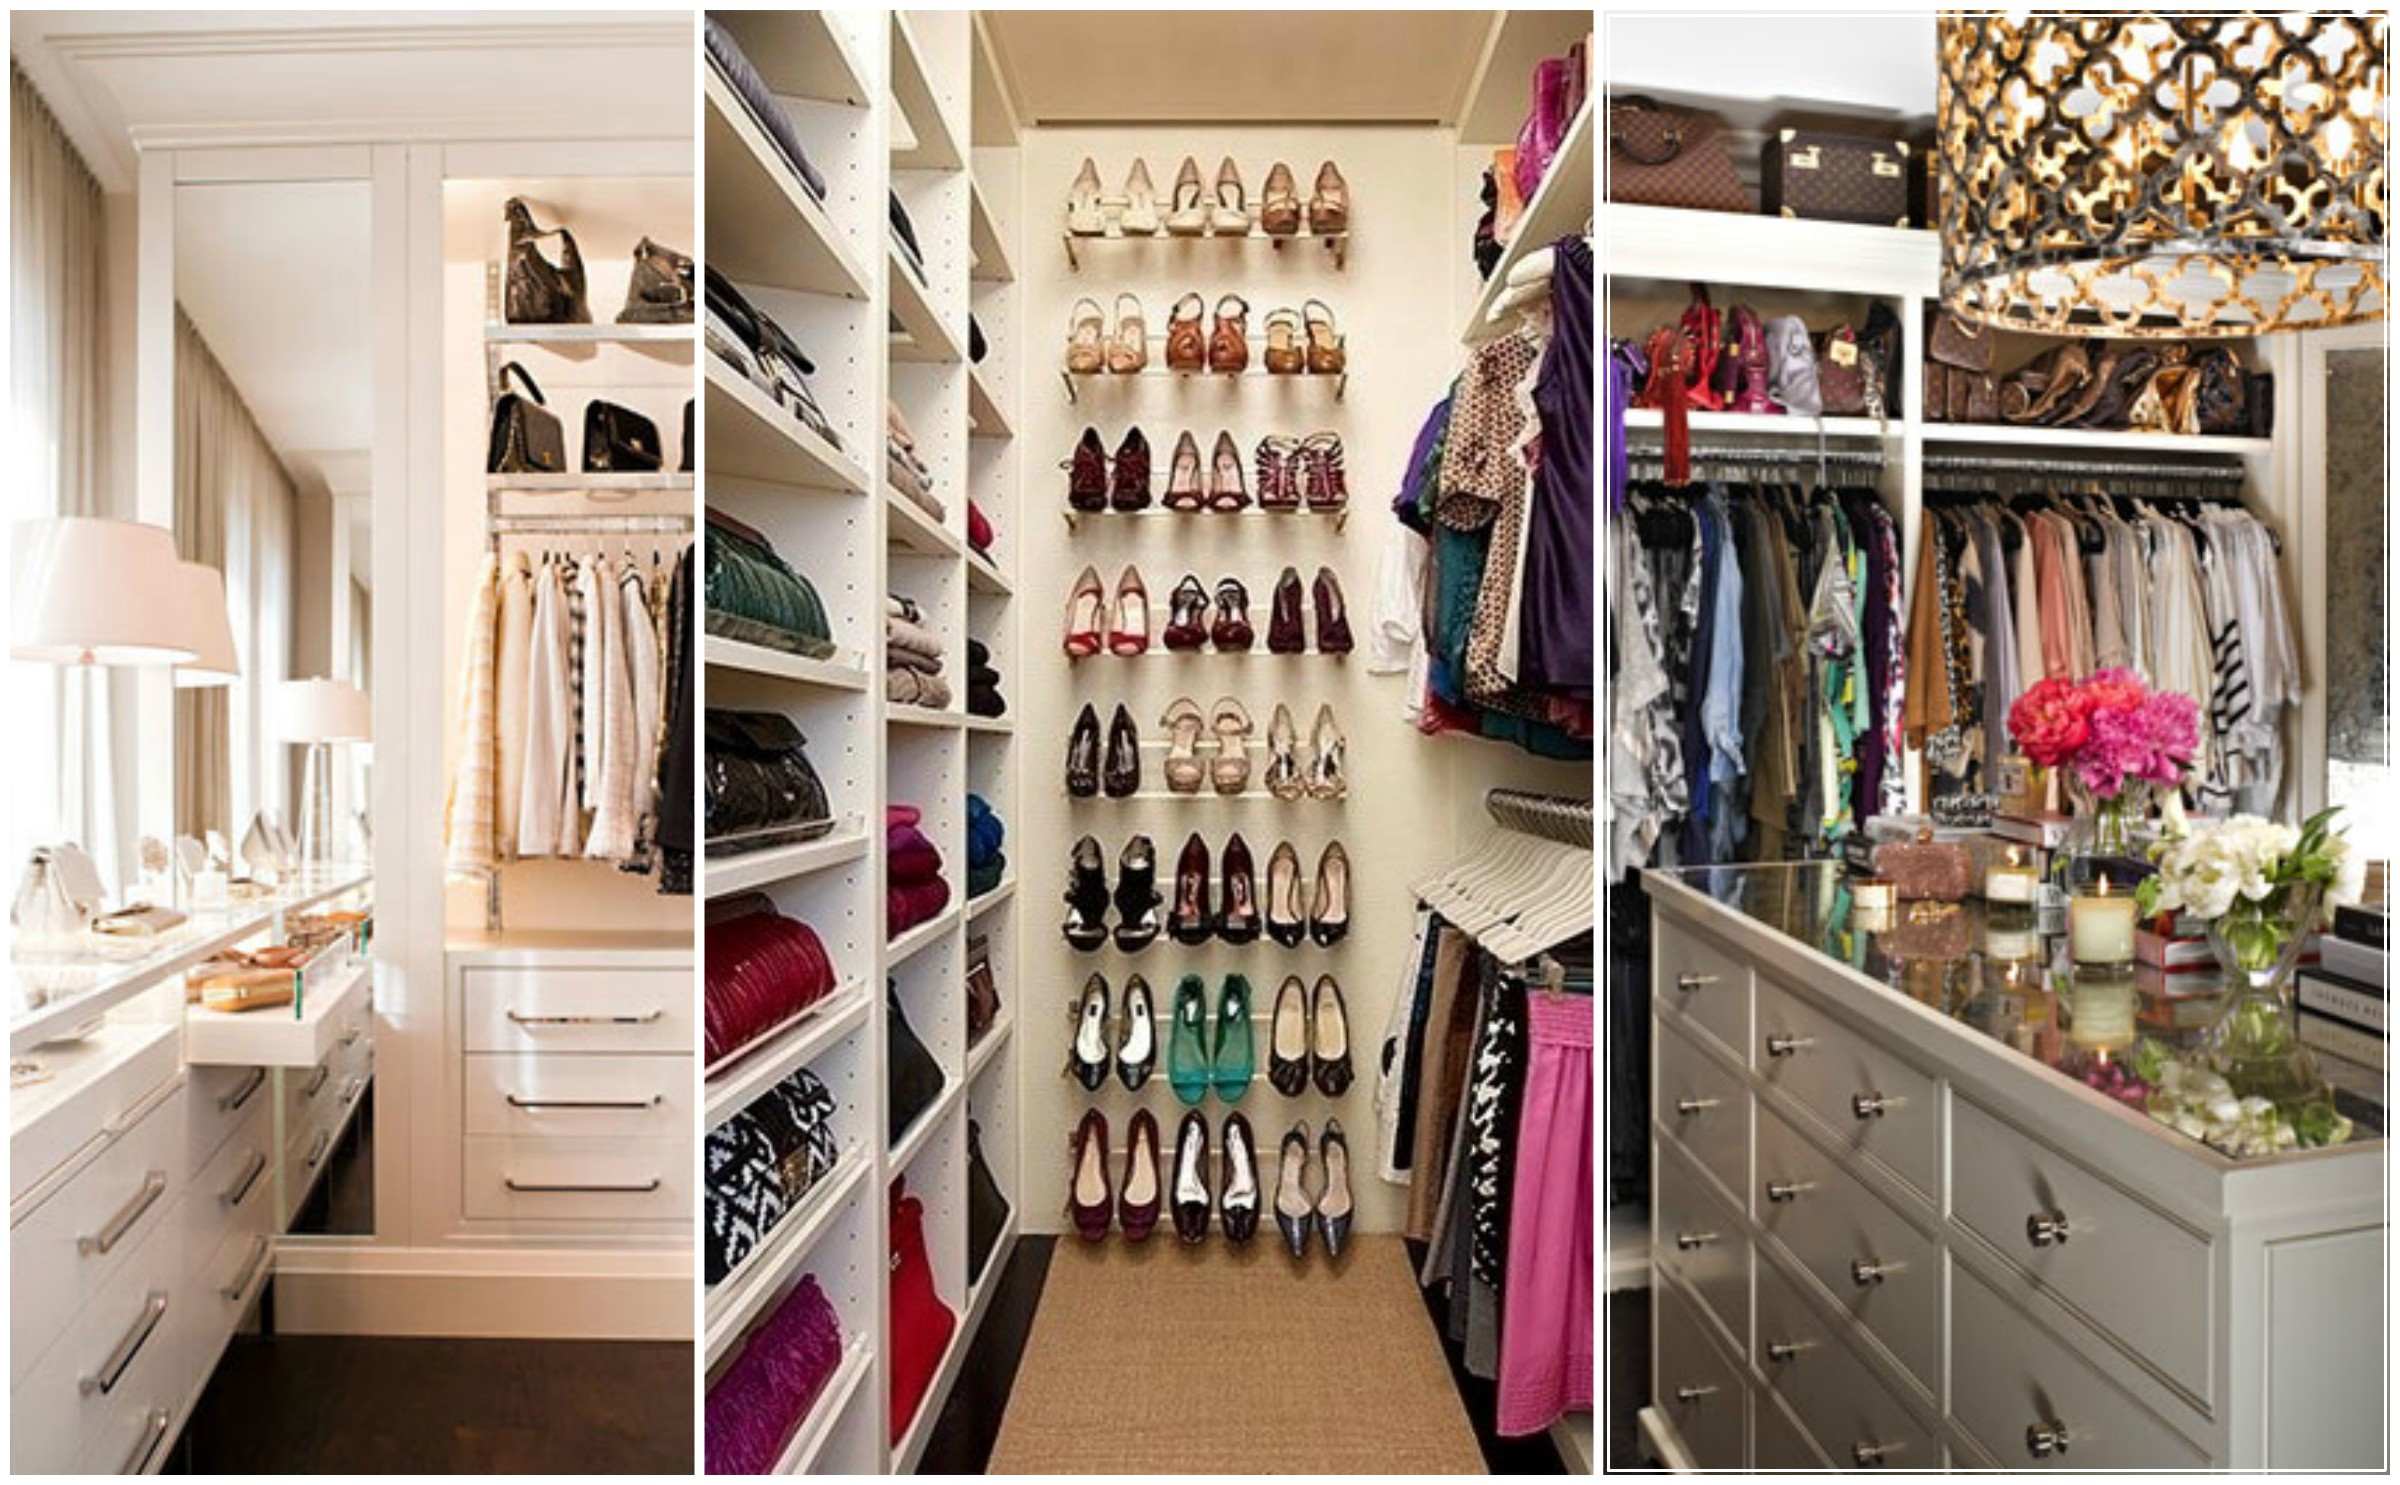 How to organize your closet for summer mystylespot for Organized walk in closet